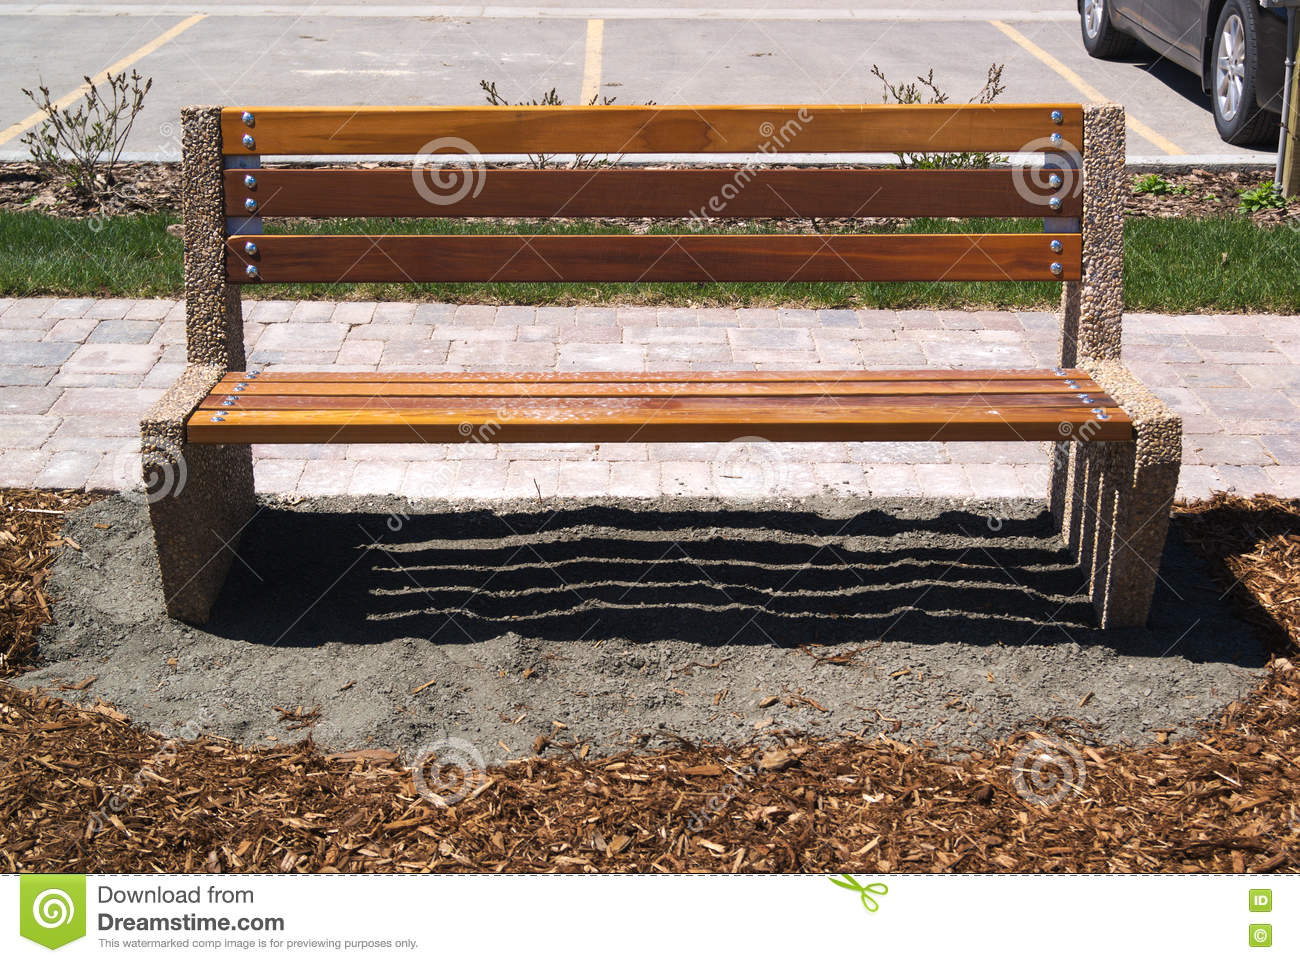 Wooden Park Benches Front Wooden Park Bench Sitting On Grey Gravel And Mulch Stock